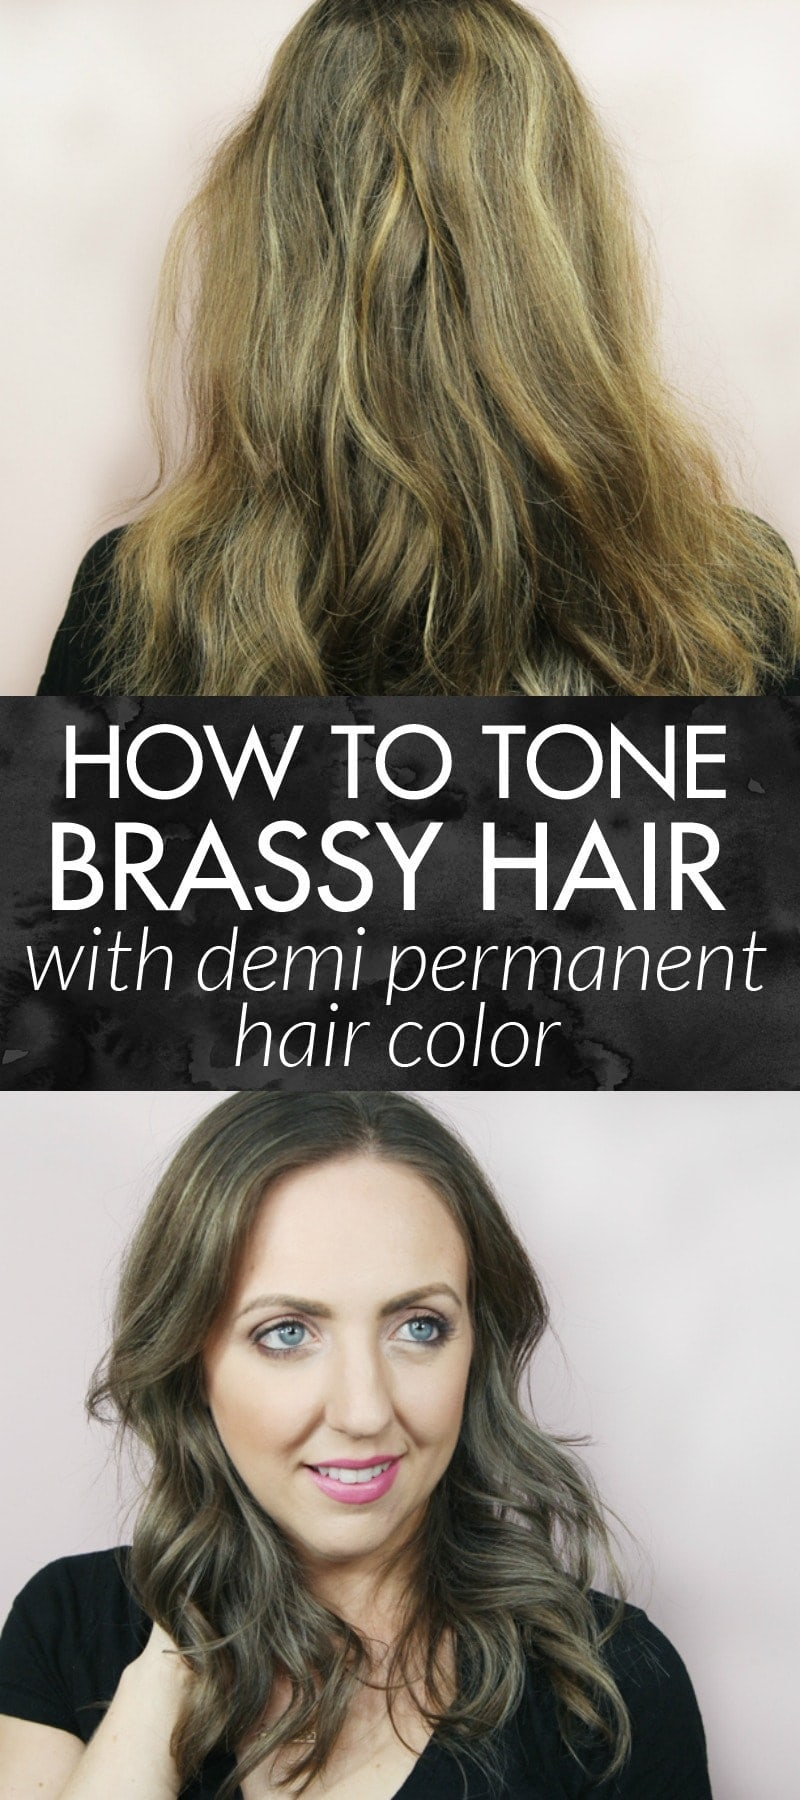 Come see how popular Houston Beauty Blogger Meg O on the Go uses the best toner for brassy hair with demi-permanent hair color. I do this with products from Sally Beauty Supply and in only 15 minutes!